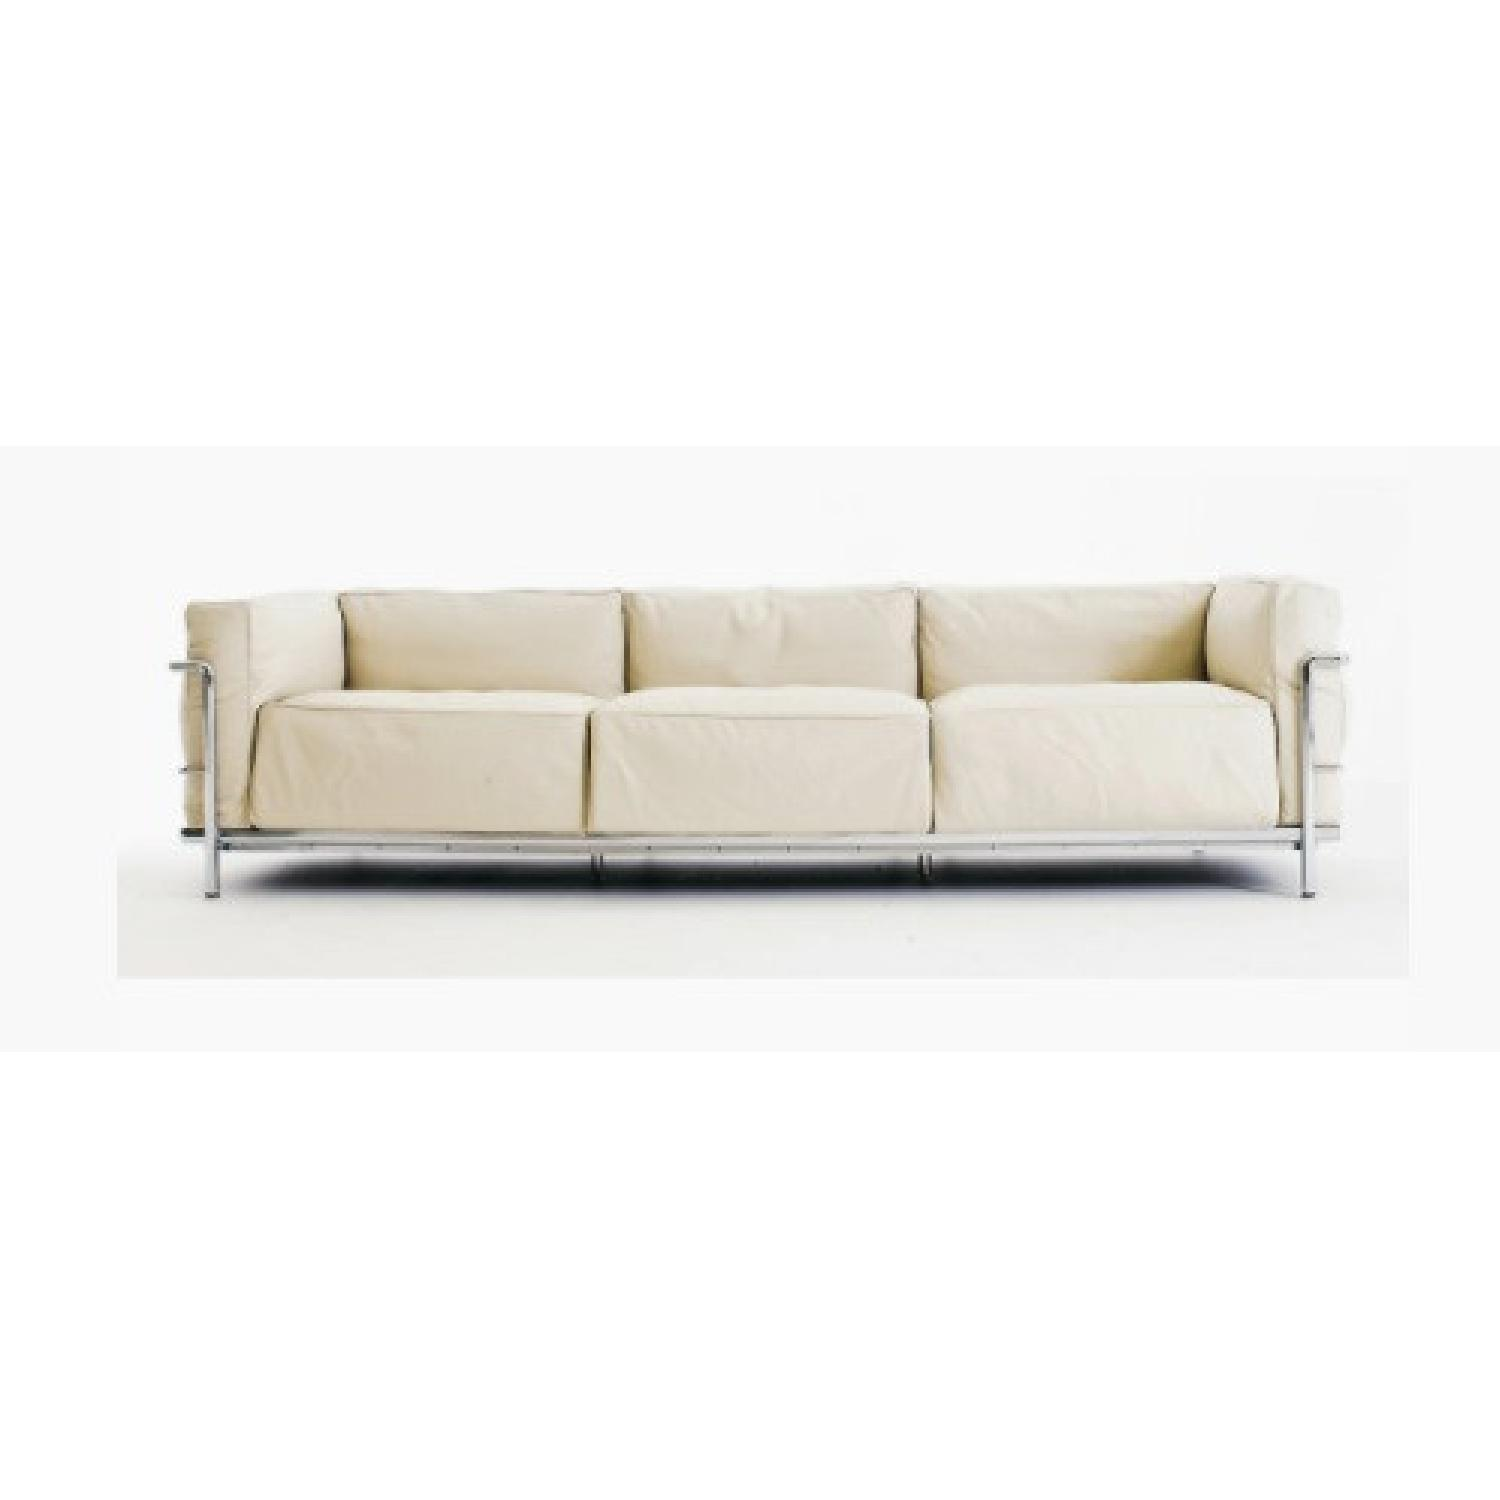 Design within Reach 3 Seat Leather Sofa - image-5